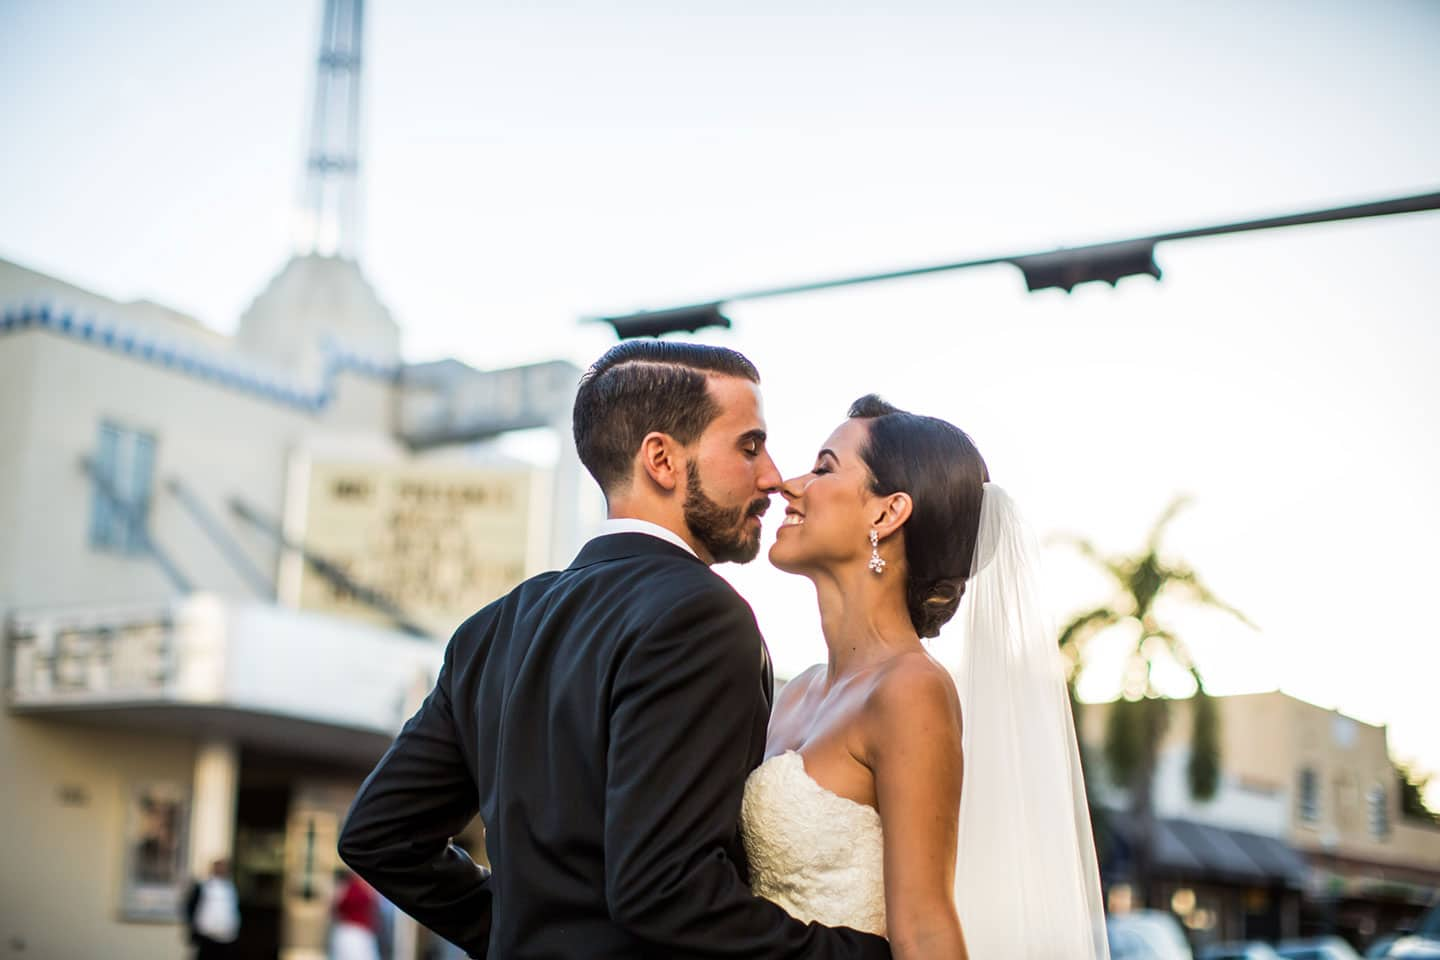 33-Miami-Little-Havana-wedding-photography